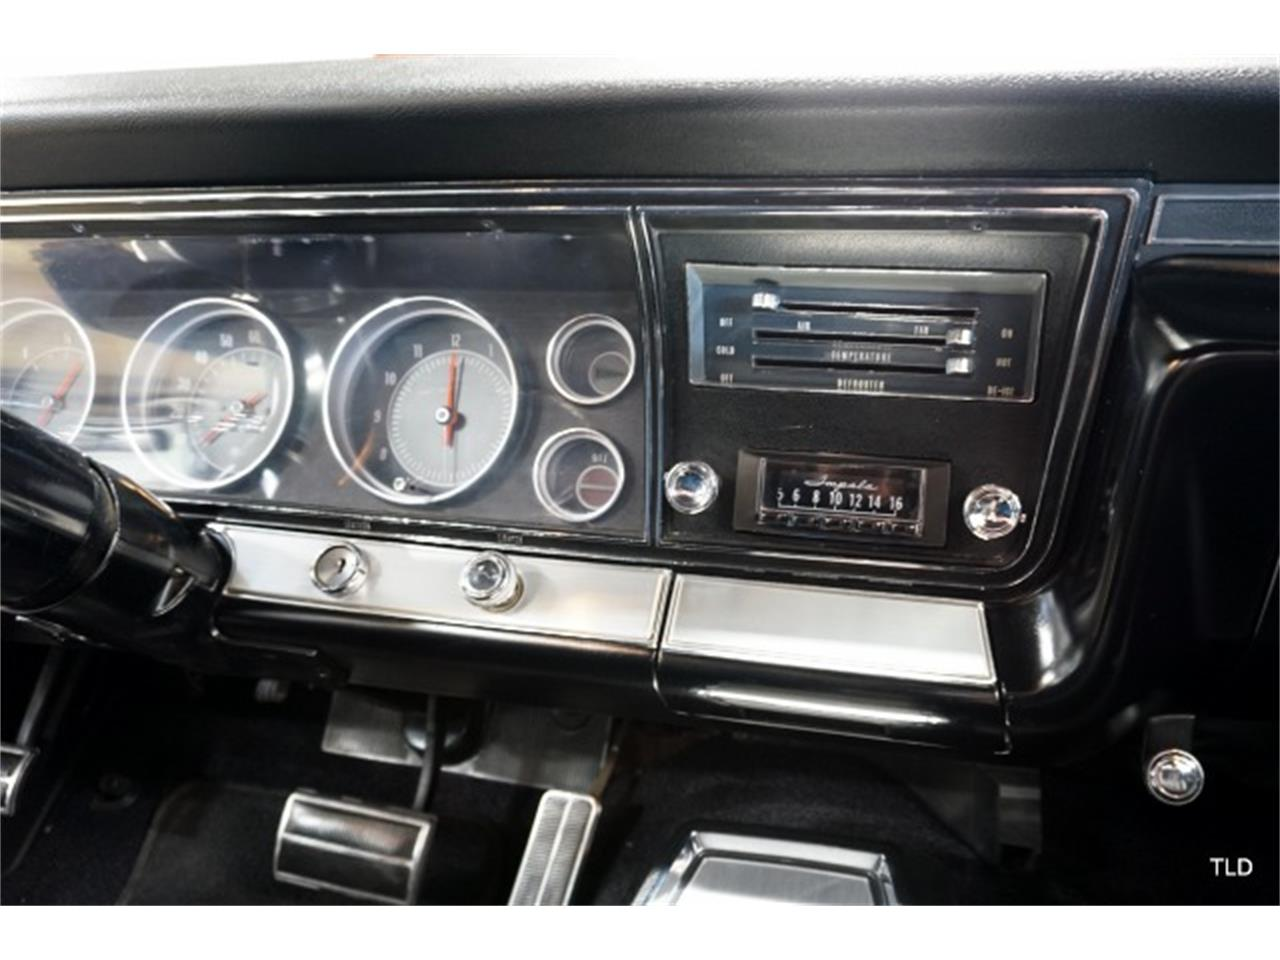 Large Picture of '67 Impala - $36,000.00 - P4FZ